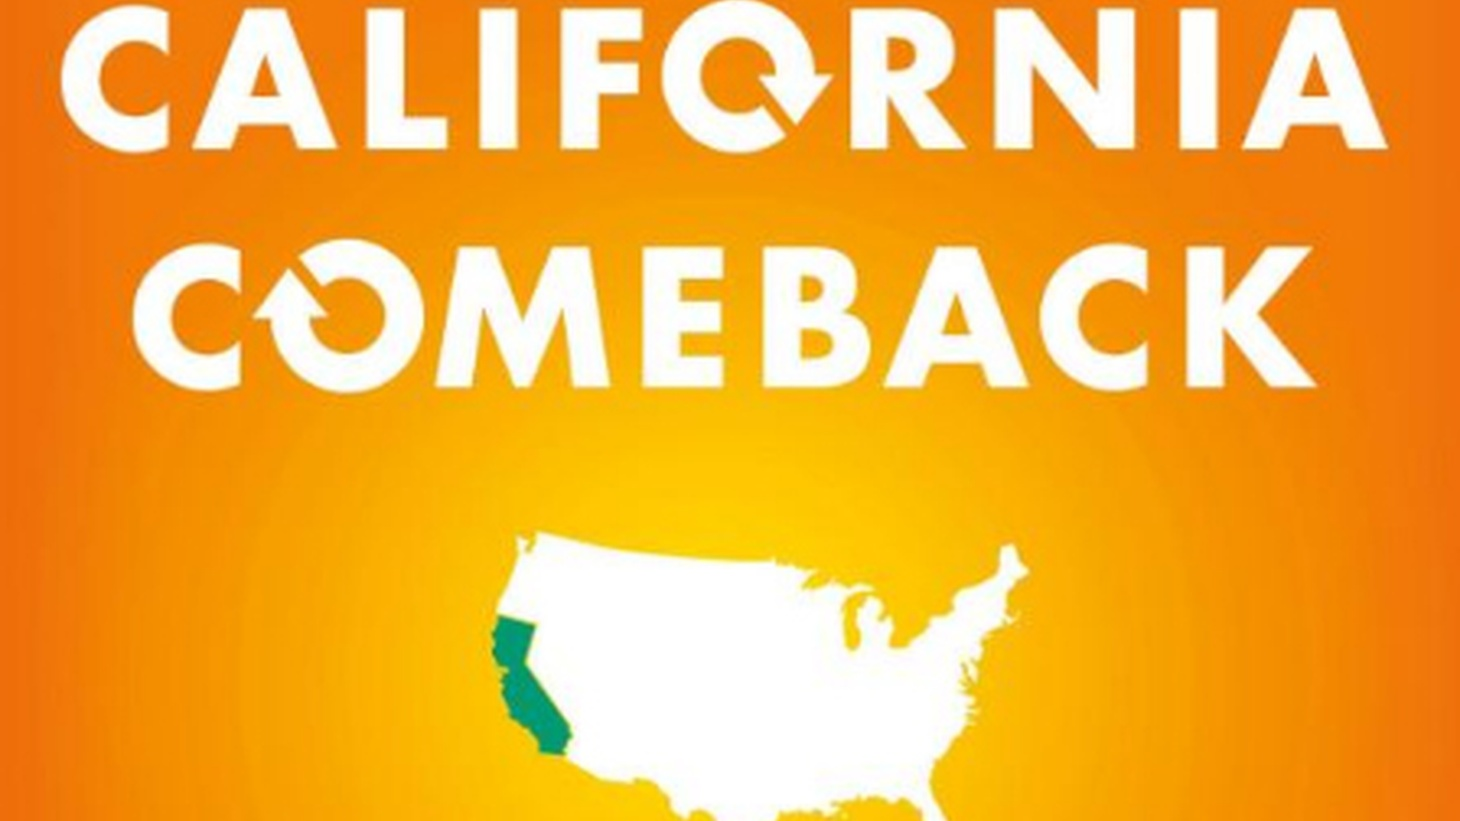 The new book California Comeback looks at the state's economic turnaround since the Great Recession.